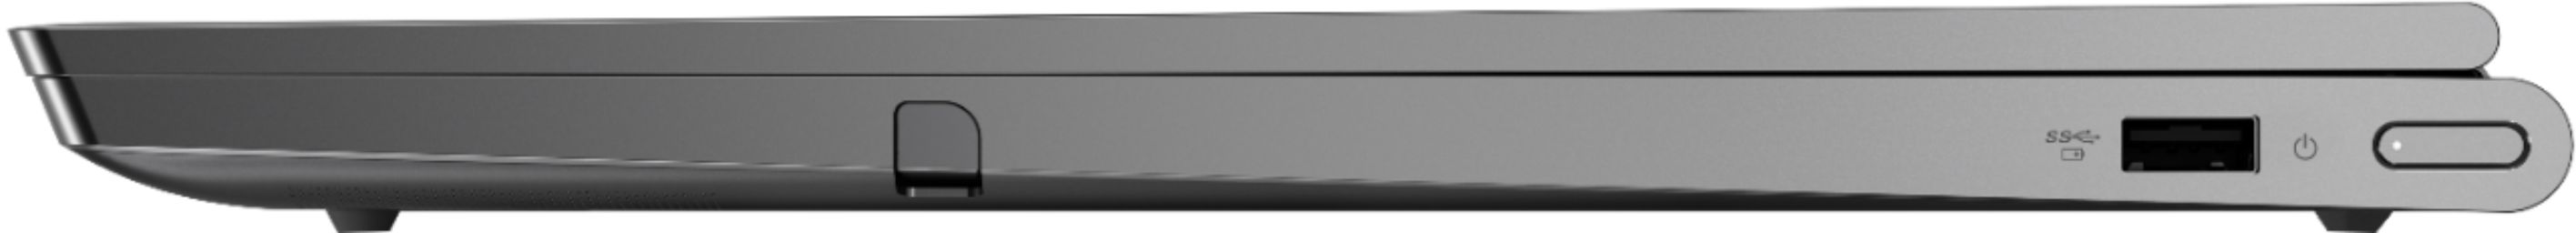 """Alt View Zoom 4. Lenovo - Yoga C940 2-in-1 15.6"""" Touch-Screen Laptop - Intel Core i7 - 16GB Memory - NVIDIA GeForce GTX 1650 - 512GB SSD - Iron Gray."""